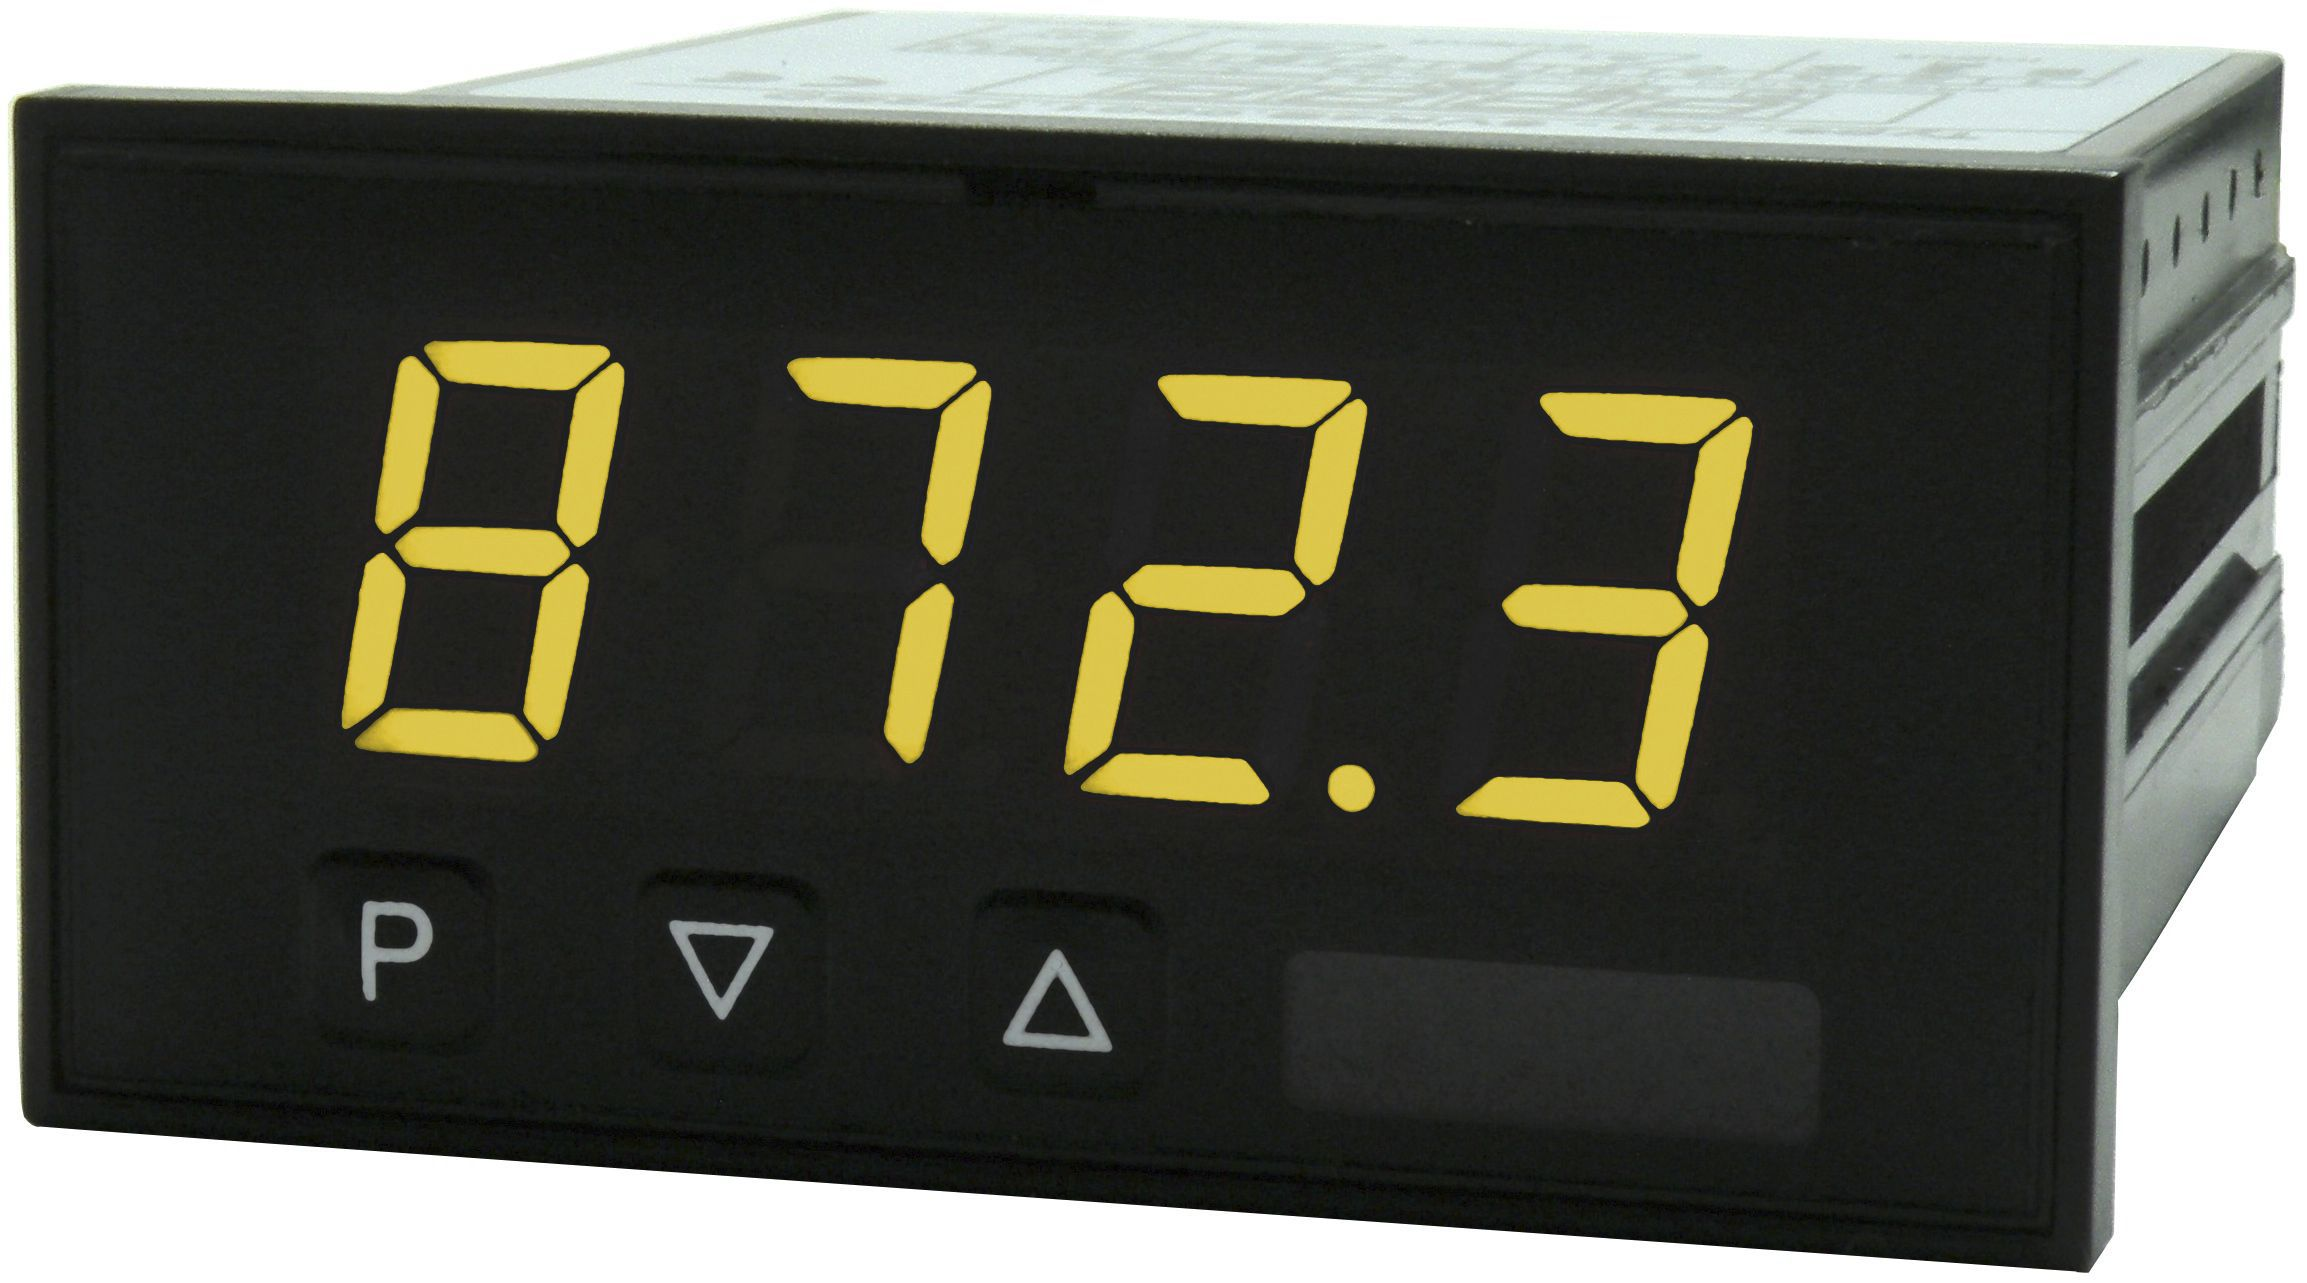 Dc Voltage Indicator 4 Digit 7 Segment Led 48x24 72x36 Digital Main